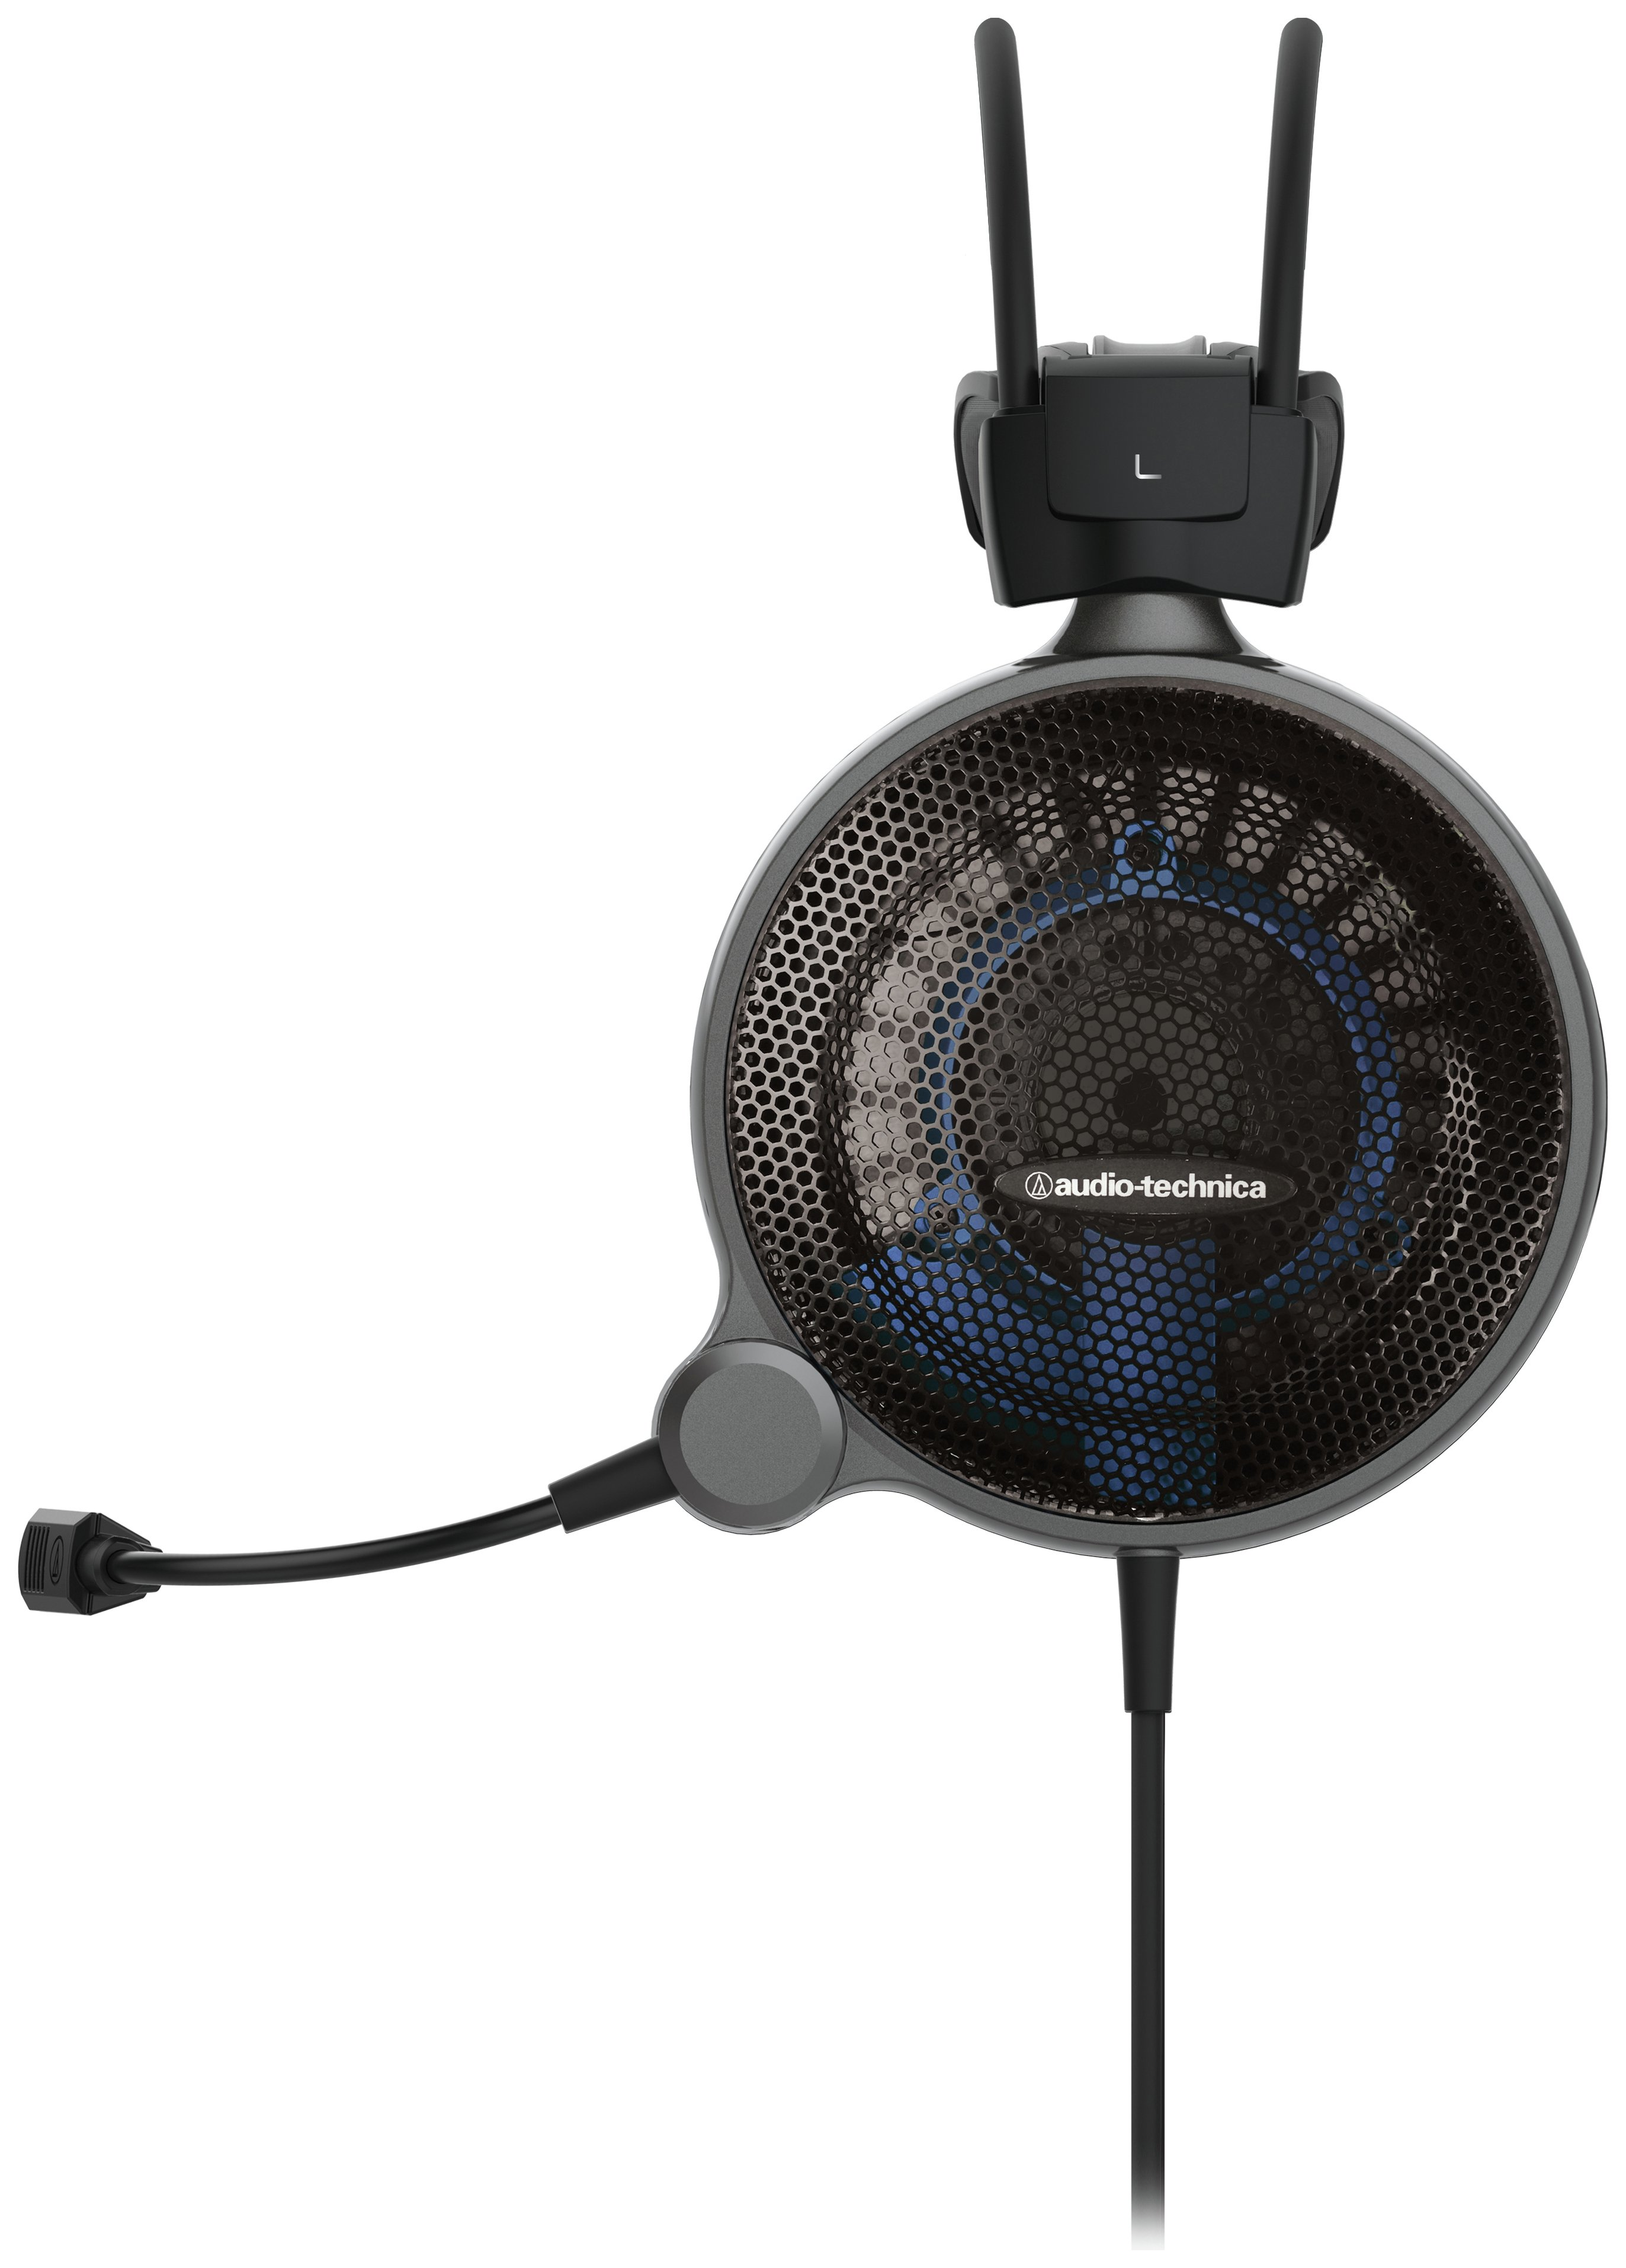 Image of Audio Technica ATH-ADG1X Gaming Headset - Black/Blue.